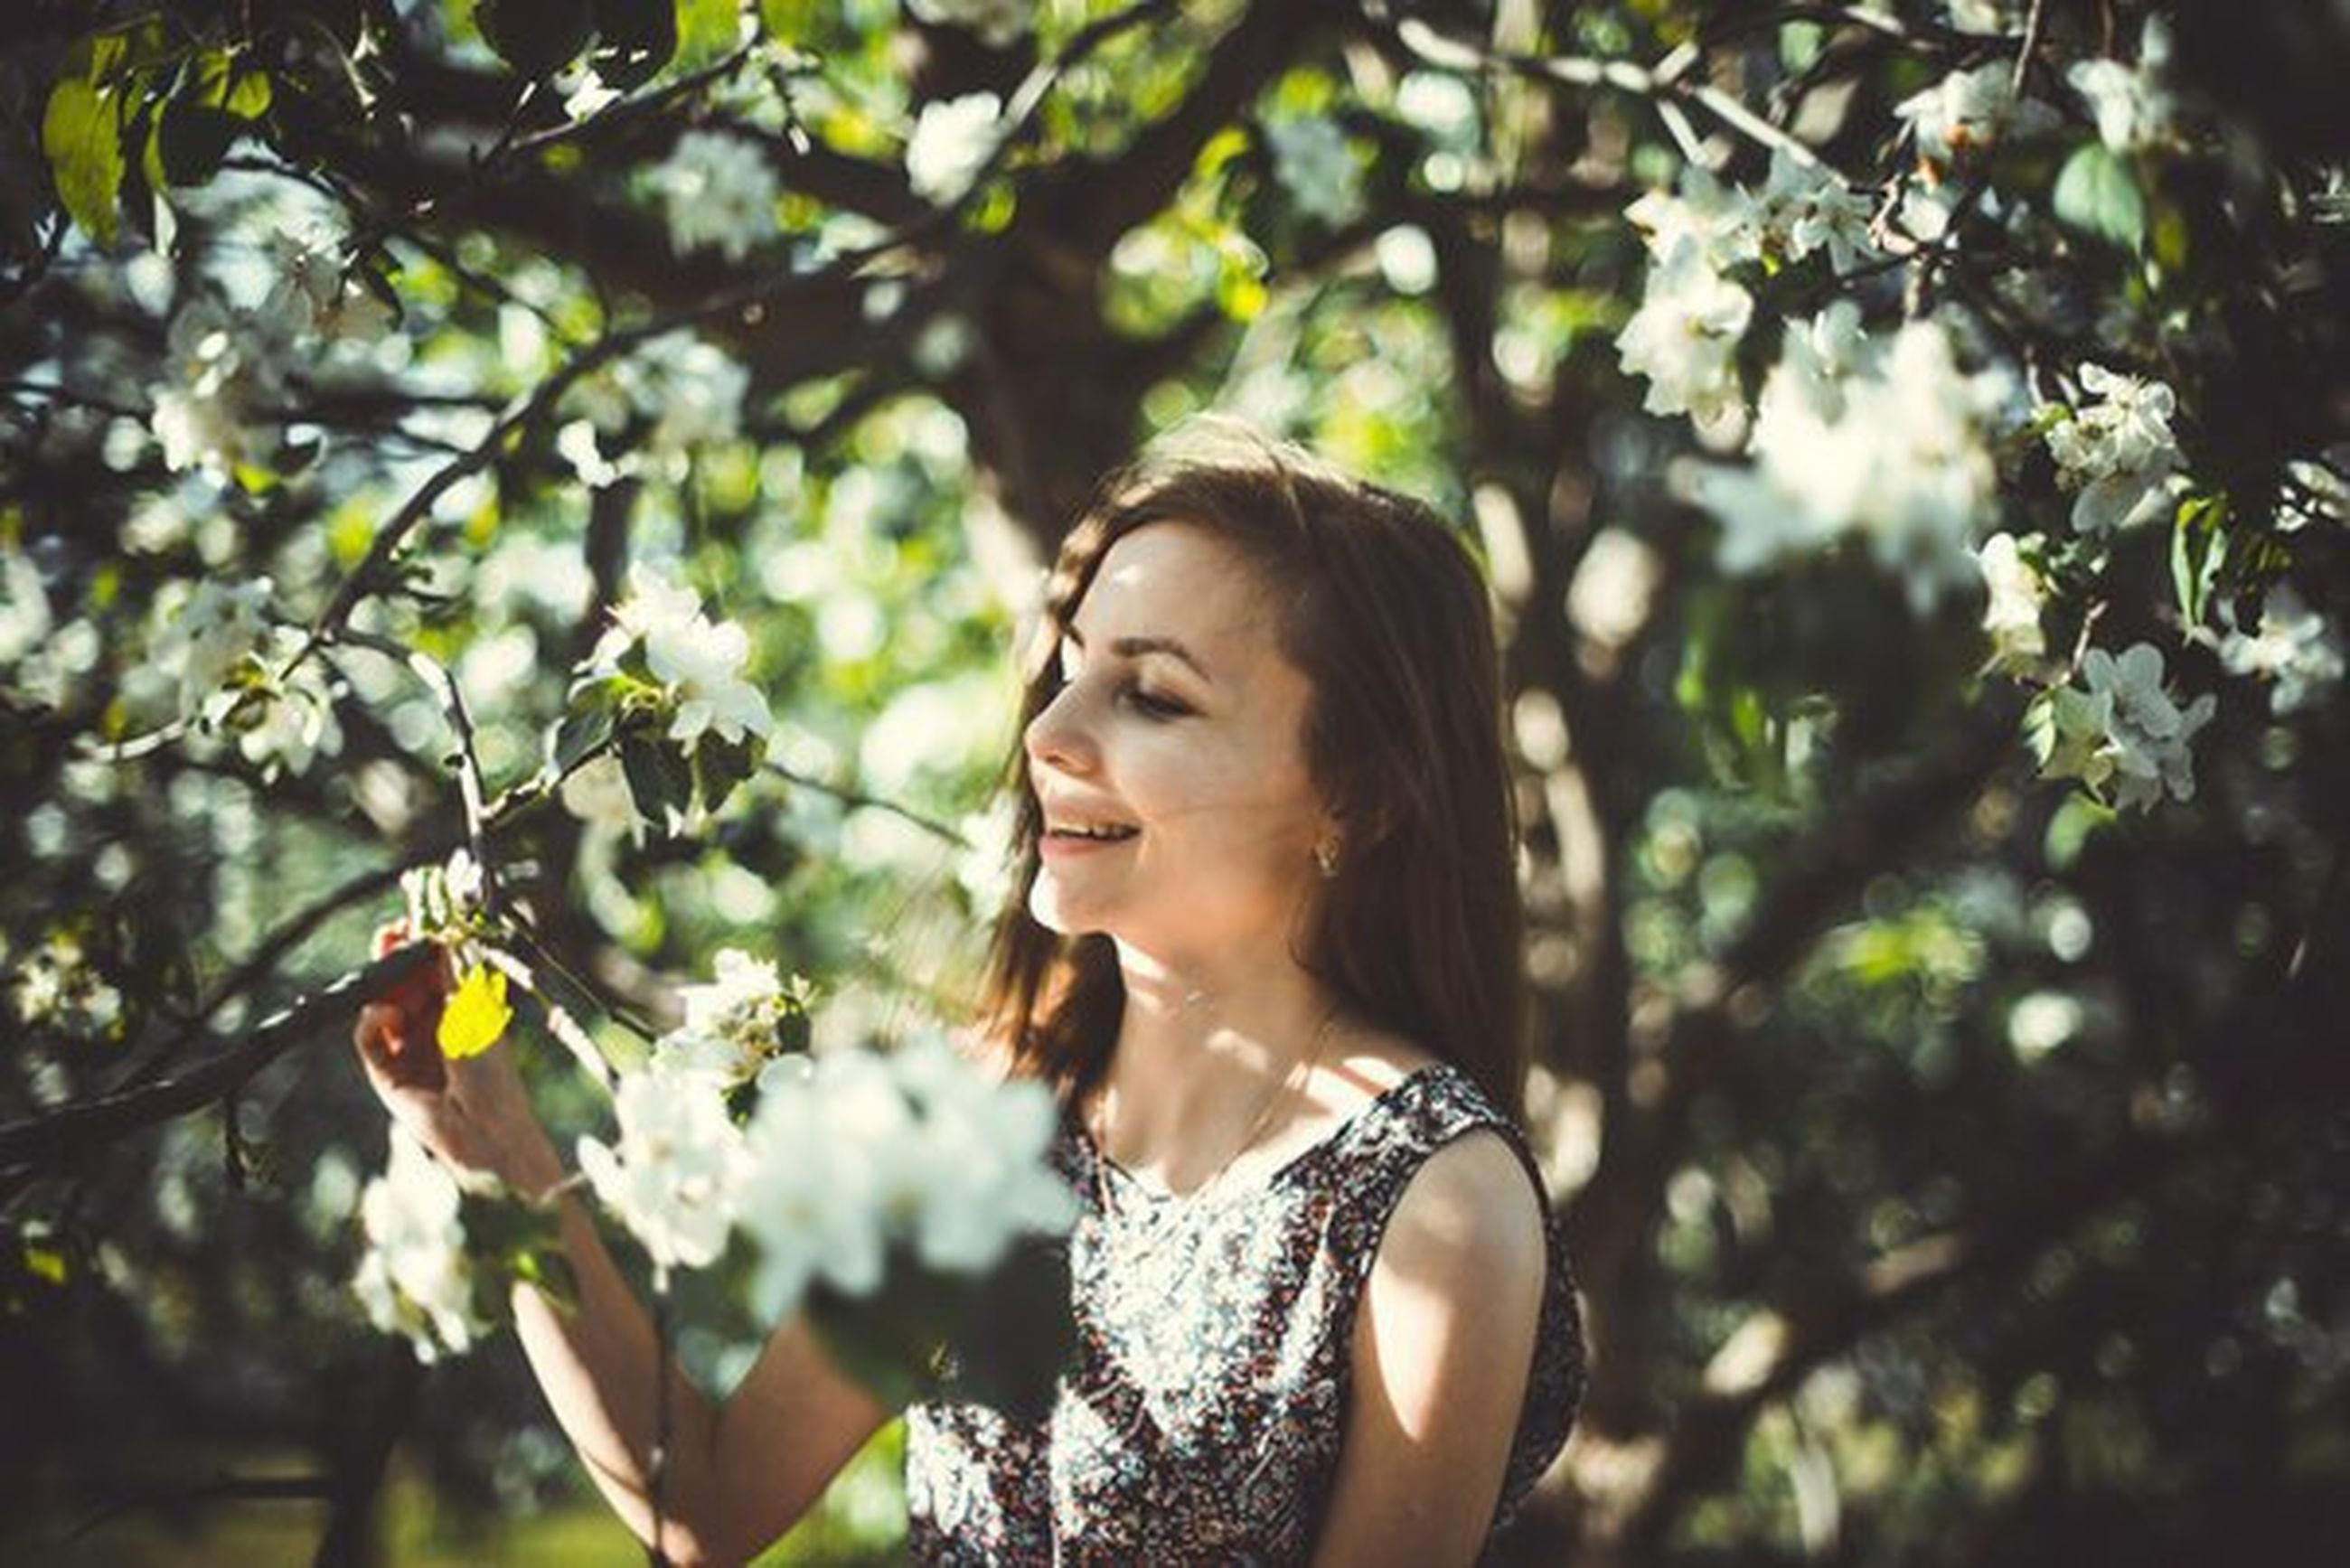 person, tree, young adult, focus on foreground, lifestyles, young women, portrait, leisure activity, headshot, front view, looking at camera, flower, branch, long hair, growth, nature